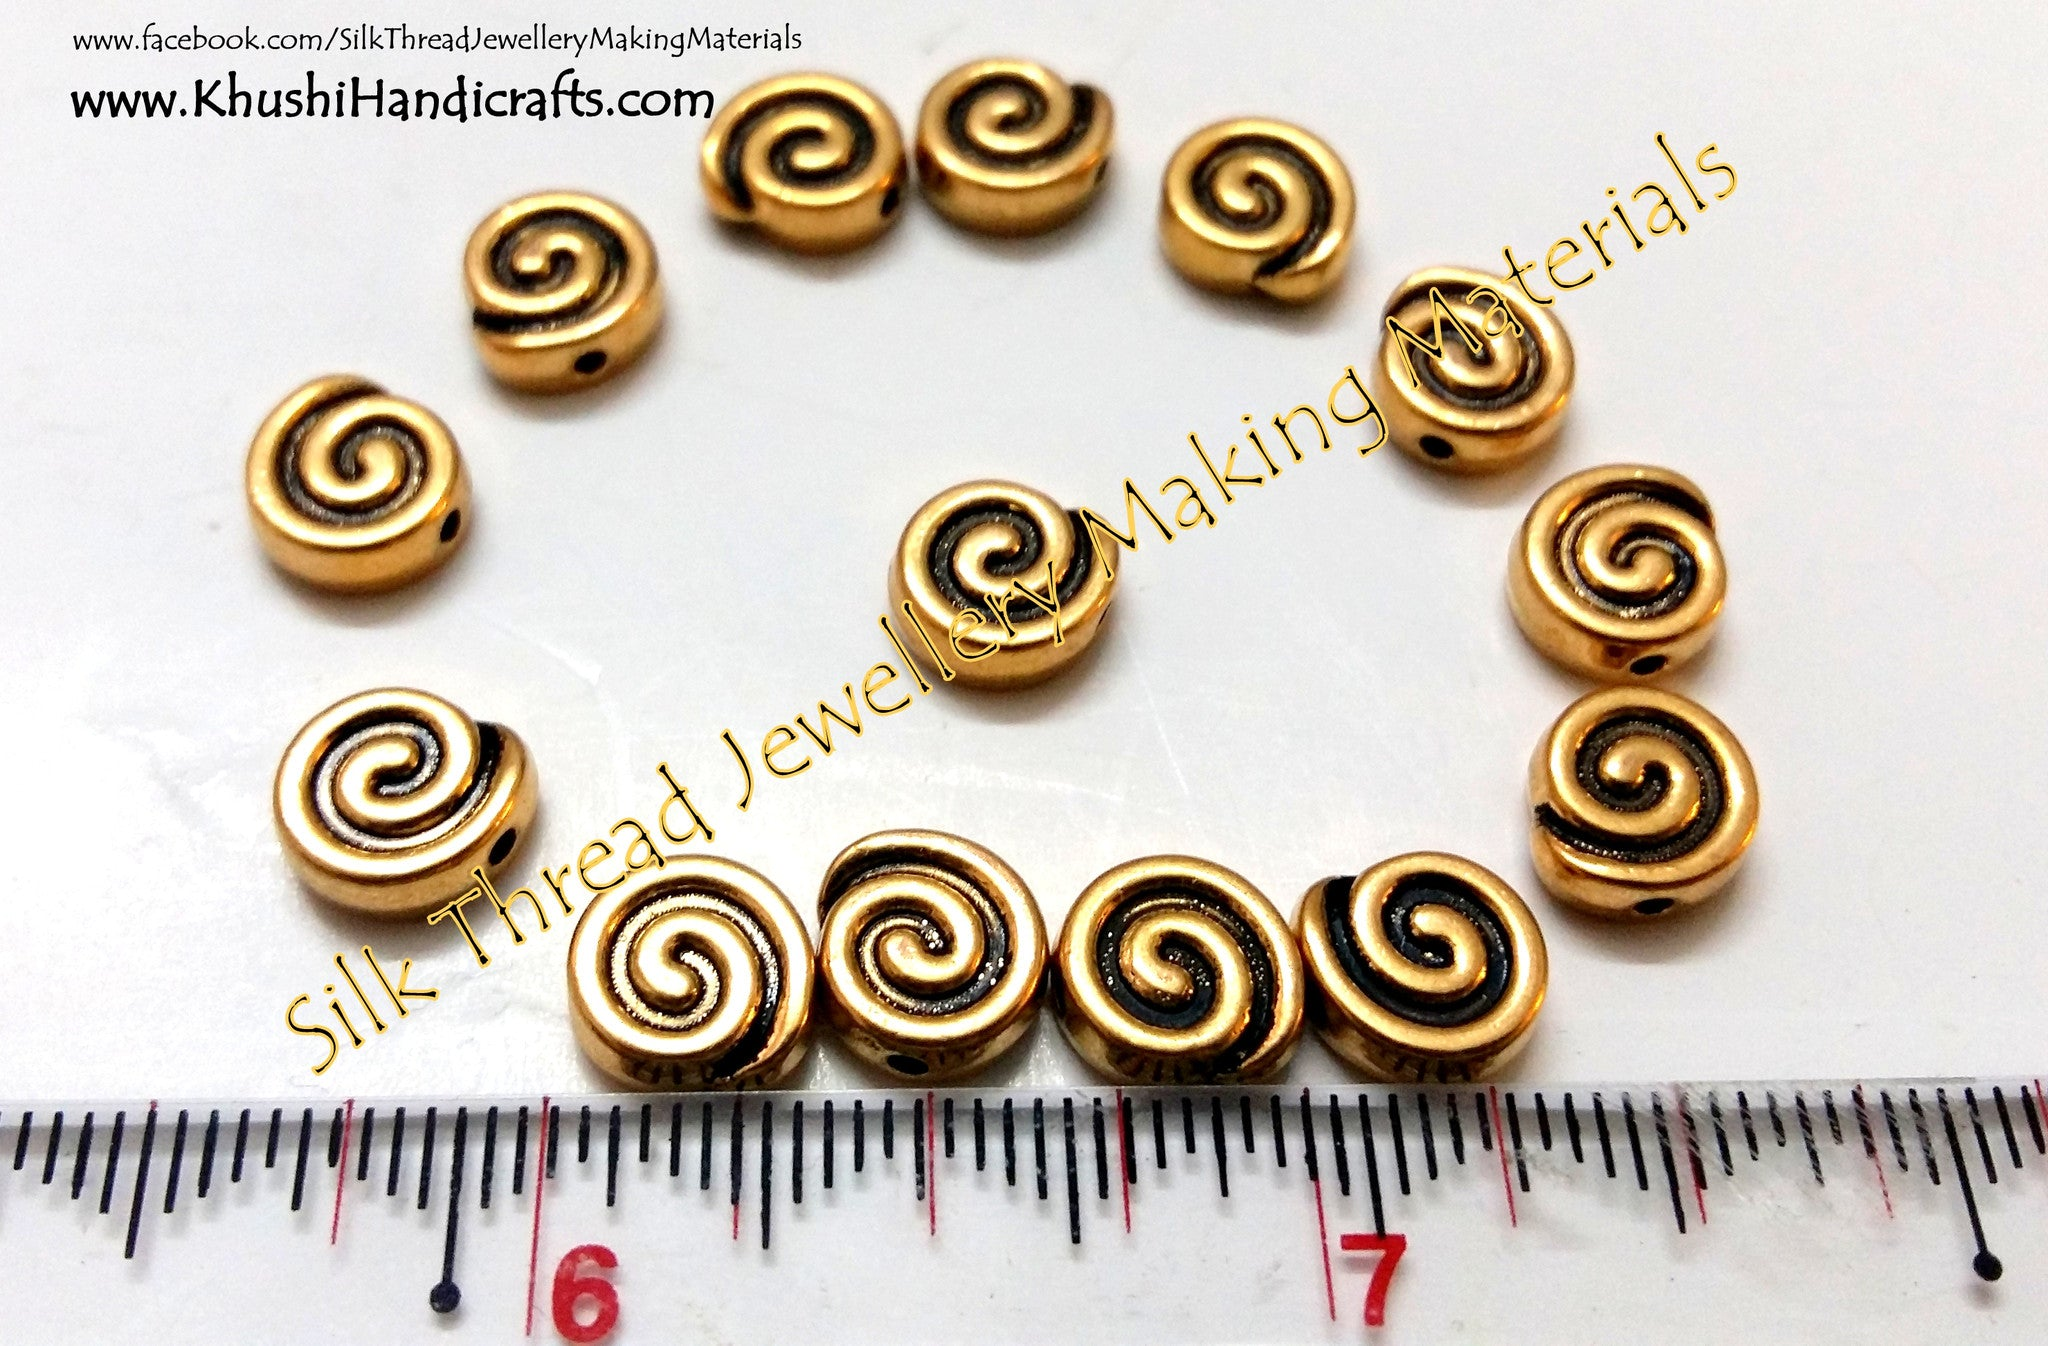 Antique Gold Spiral spacer charms.Sold as a set of 10 pieces! - Khushi Handmade Jewellery